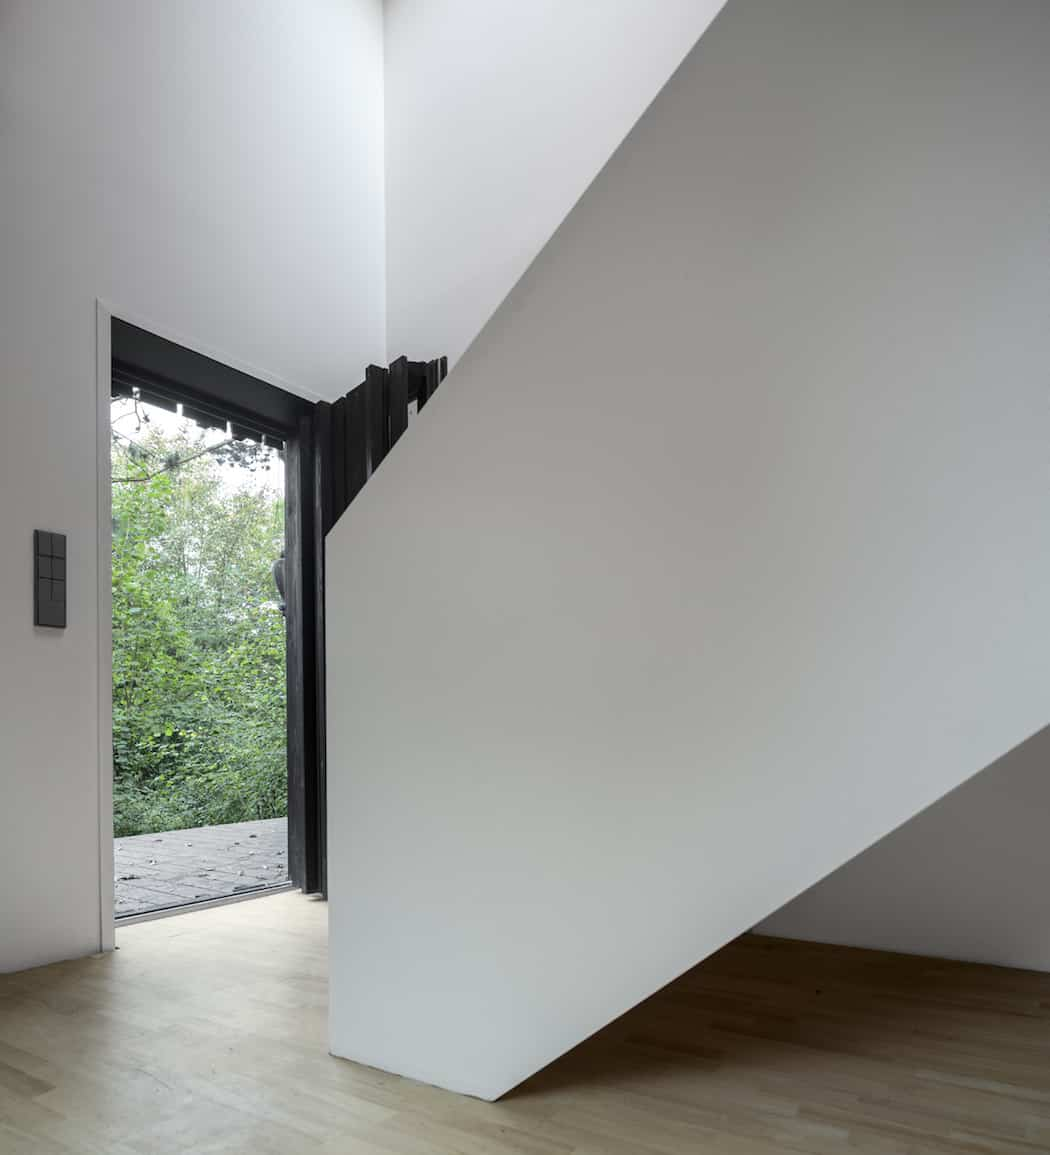 Marchi_BlackHouse_Enchanting_Timber_Home_Nestled_in_The Forests of Normandy01-1050x742 (7)